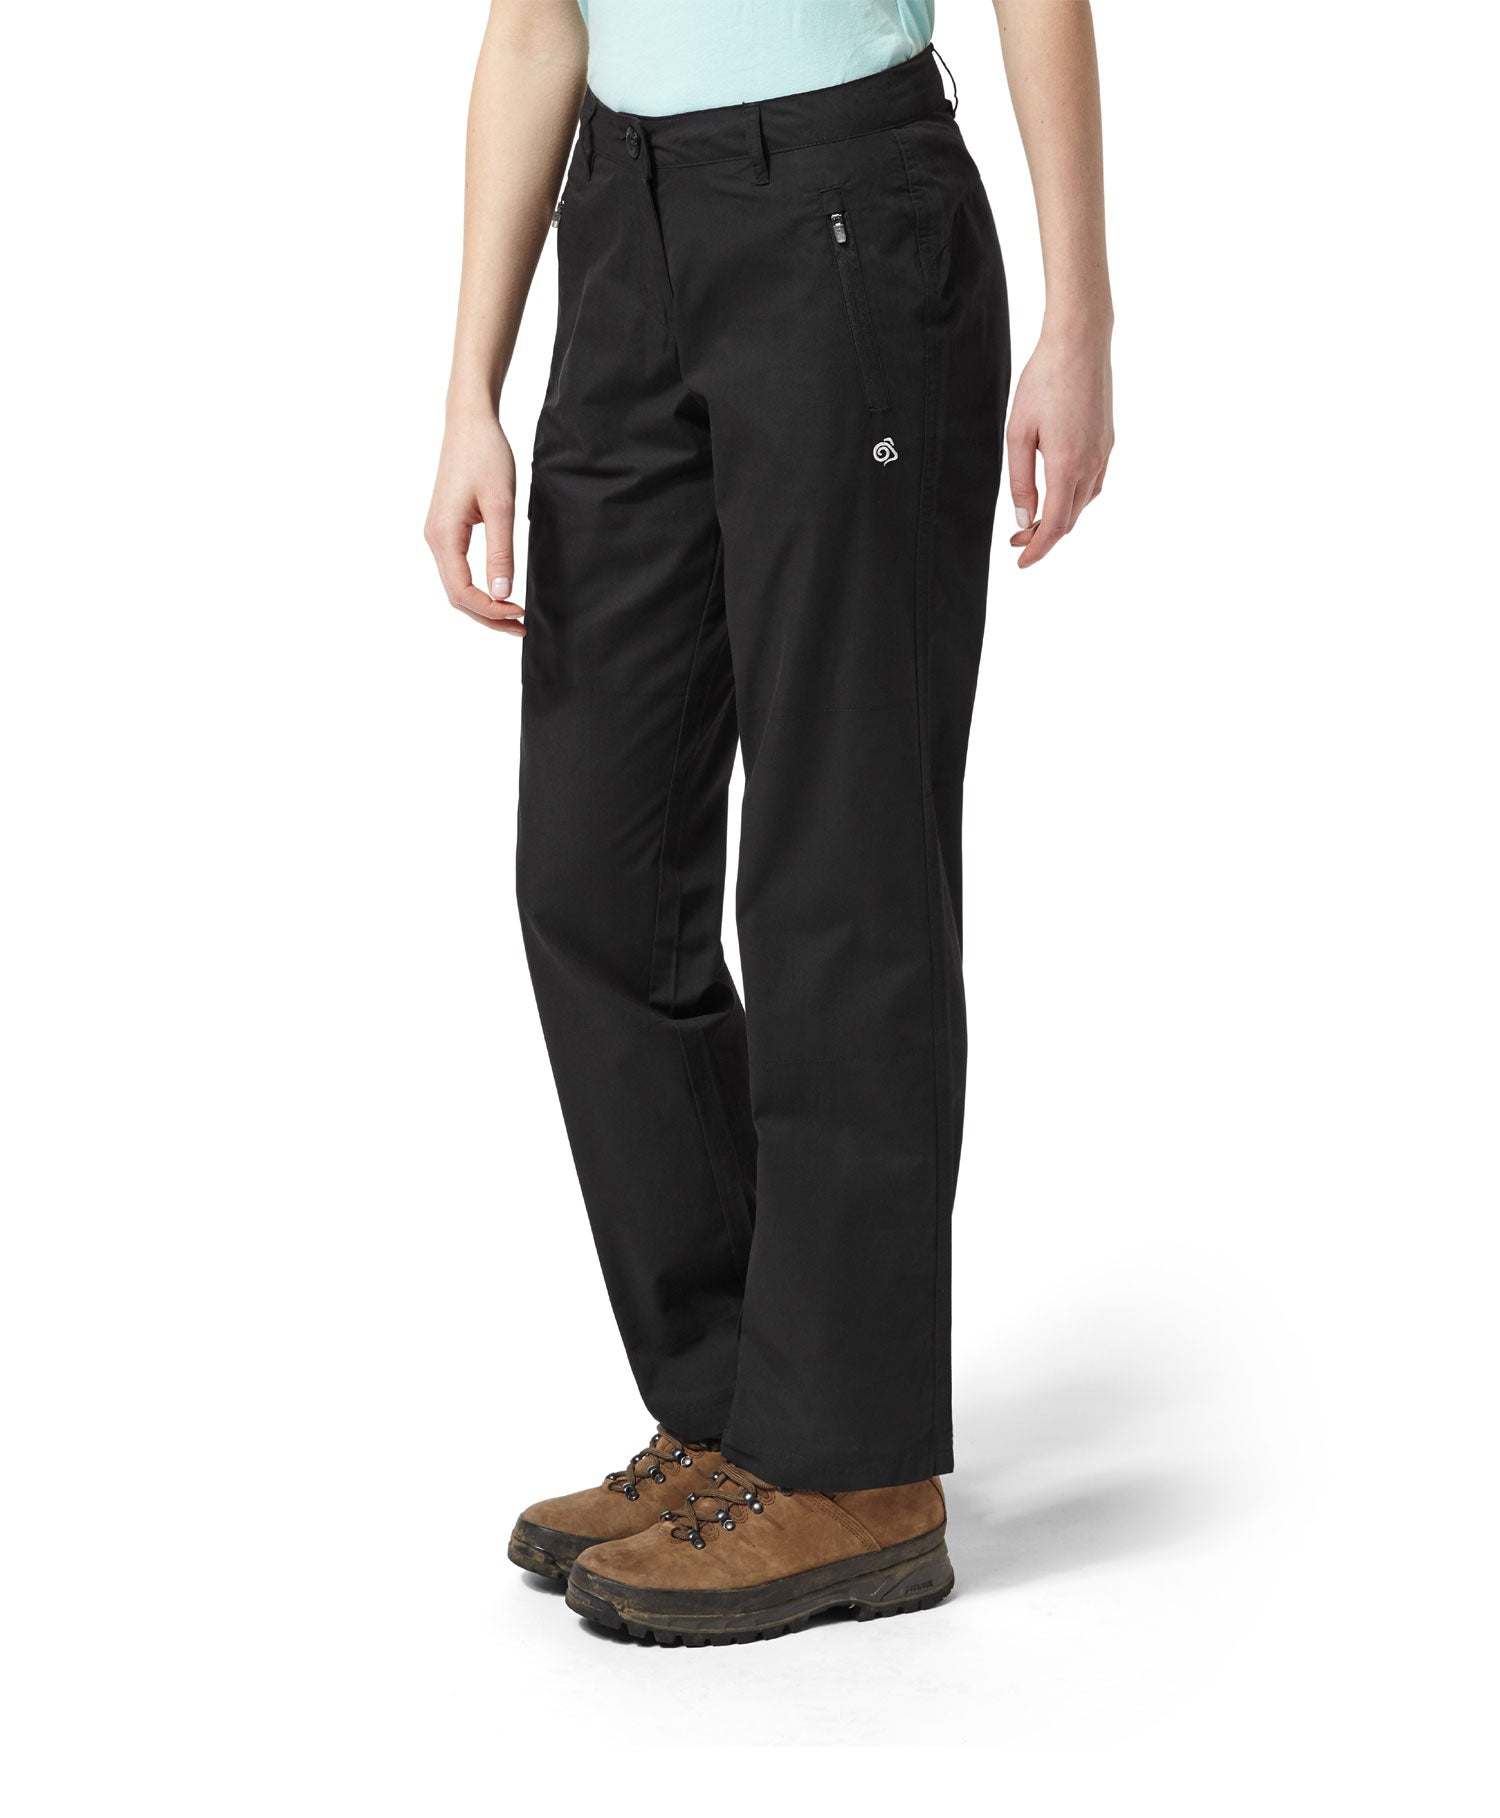 walking in Ladies Traverse Trail Trousers by Craghoppers